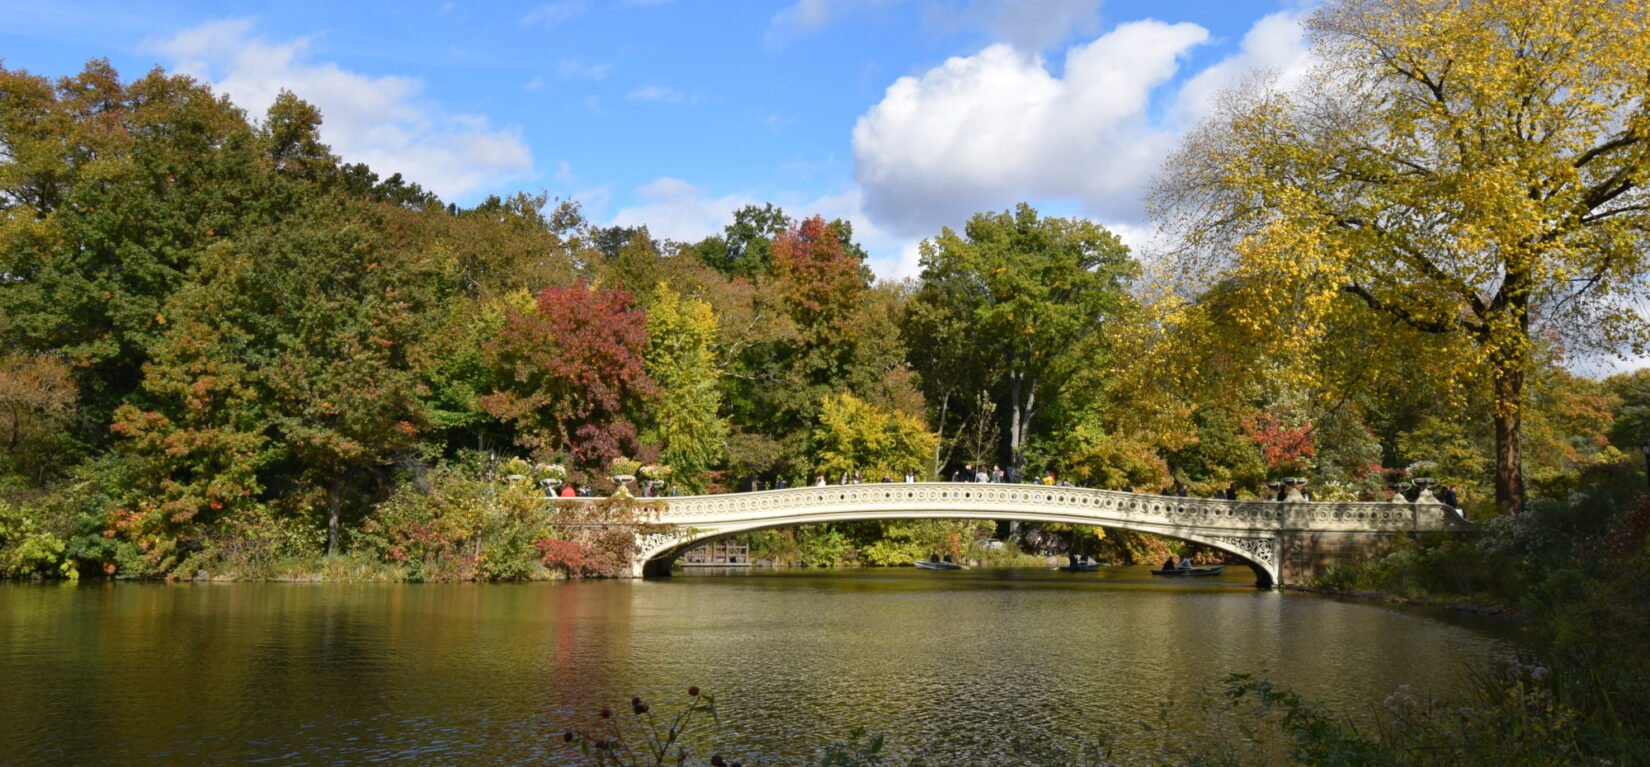 Bow Bridge seen in fall on a sunny day